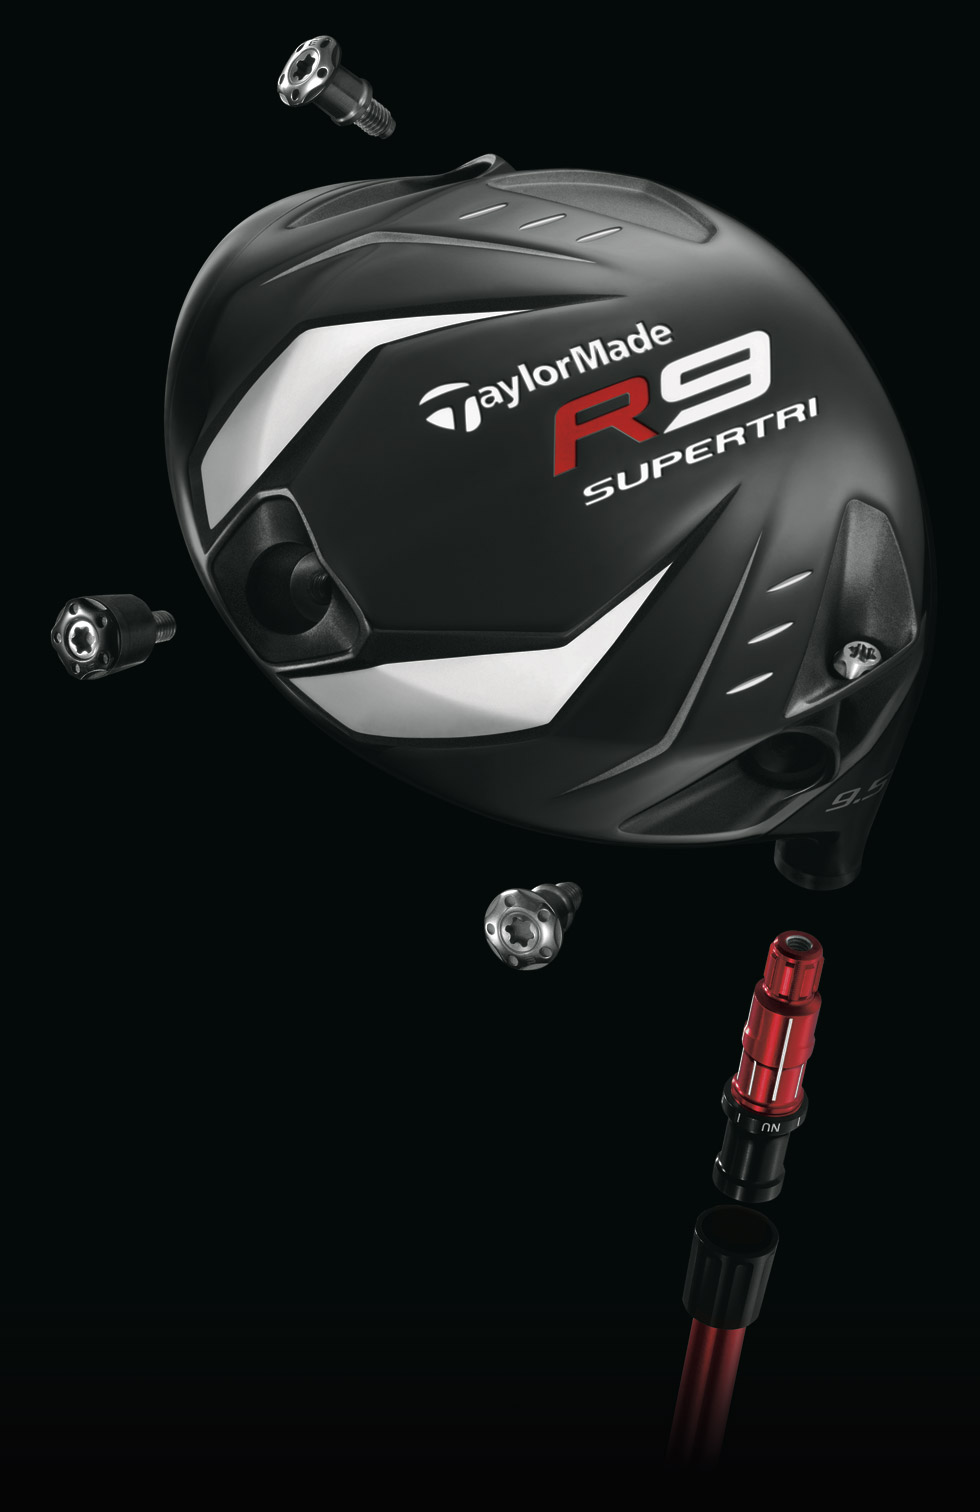 Taylormade R9 460 Driver Adjustments